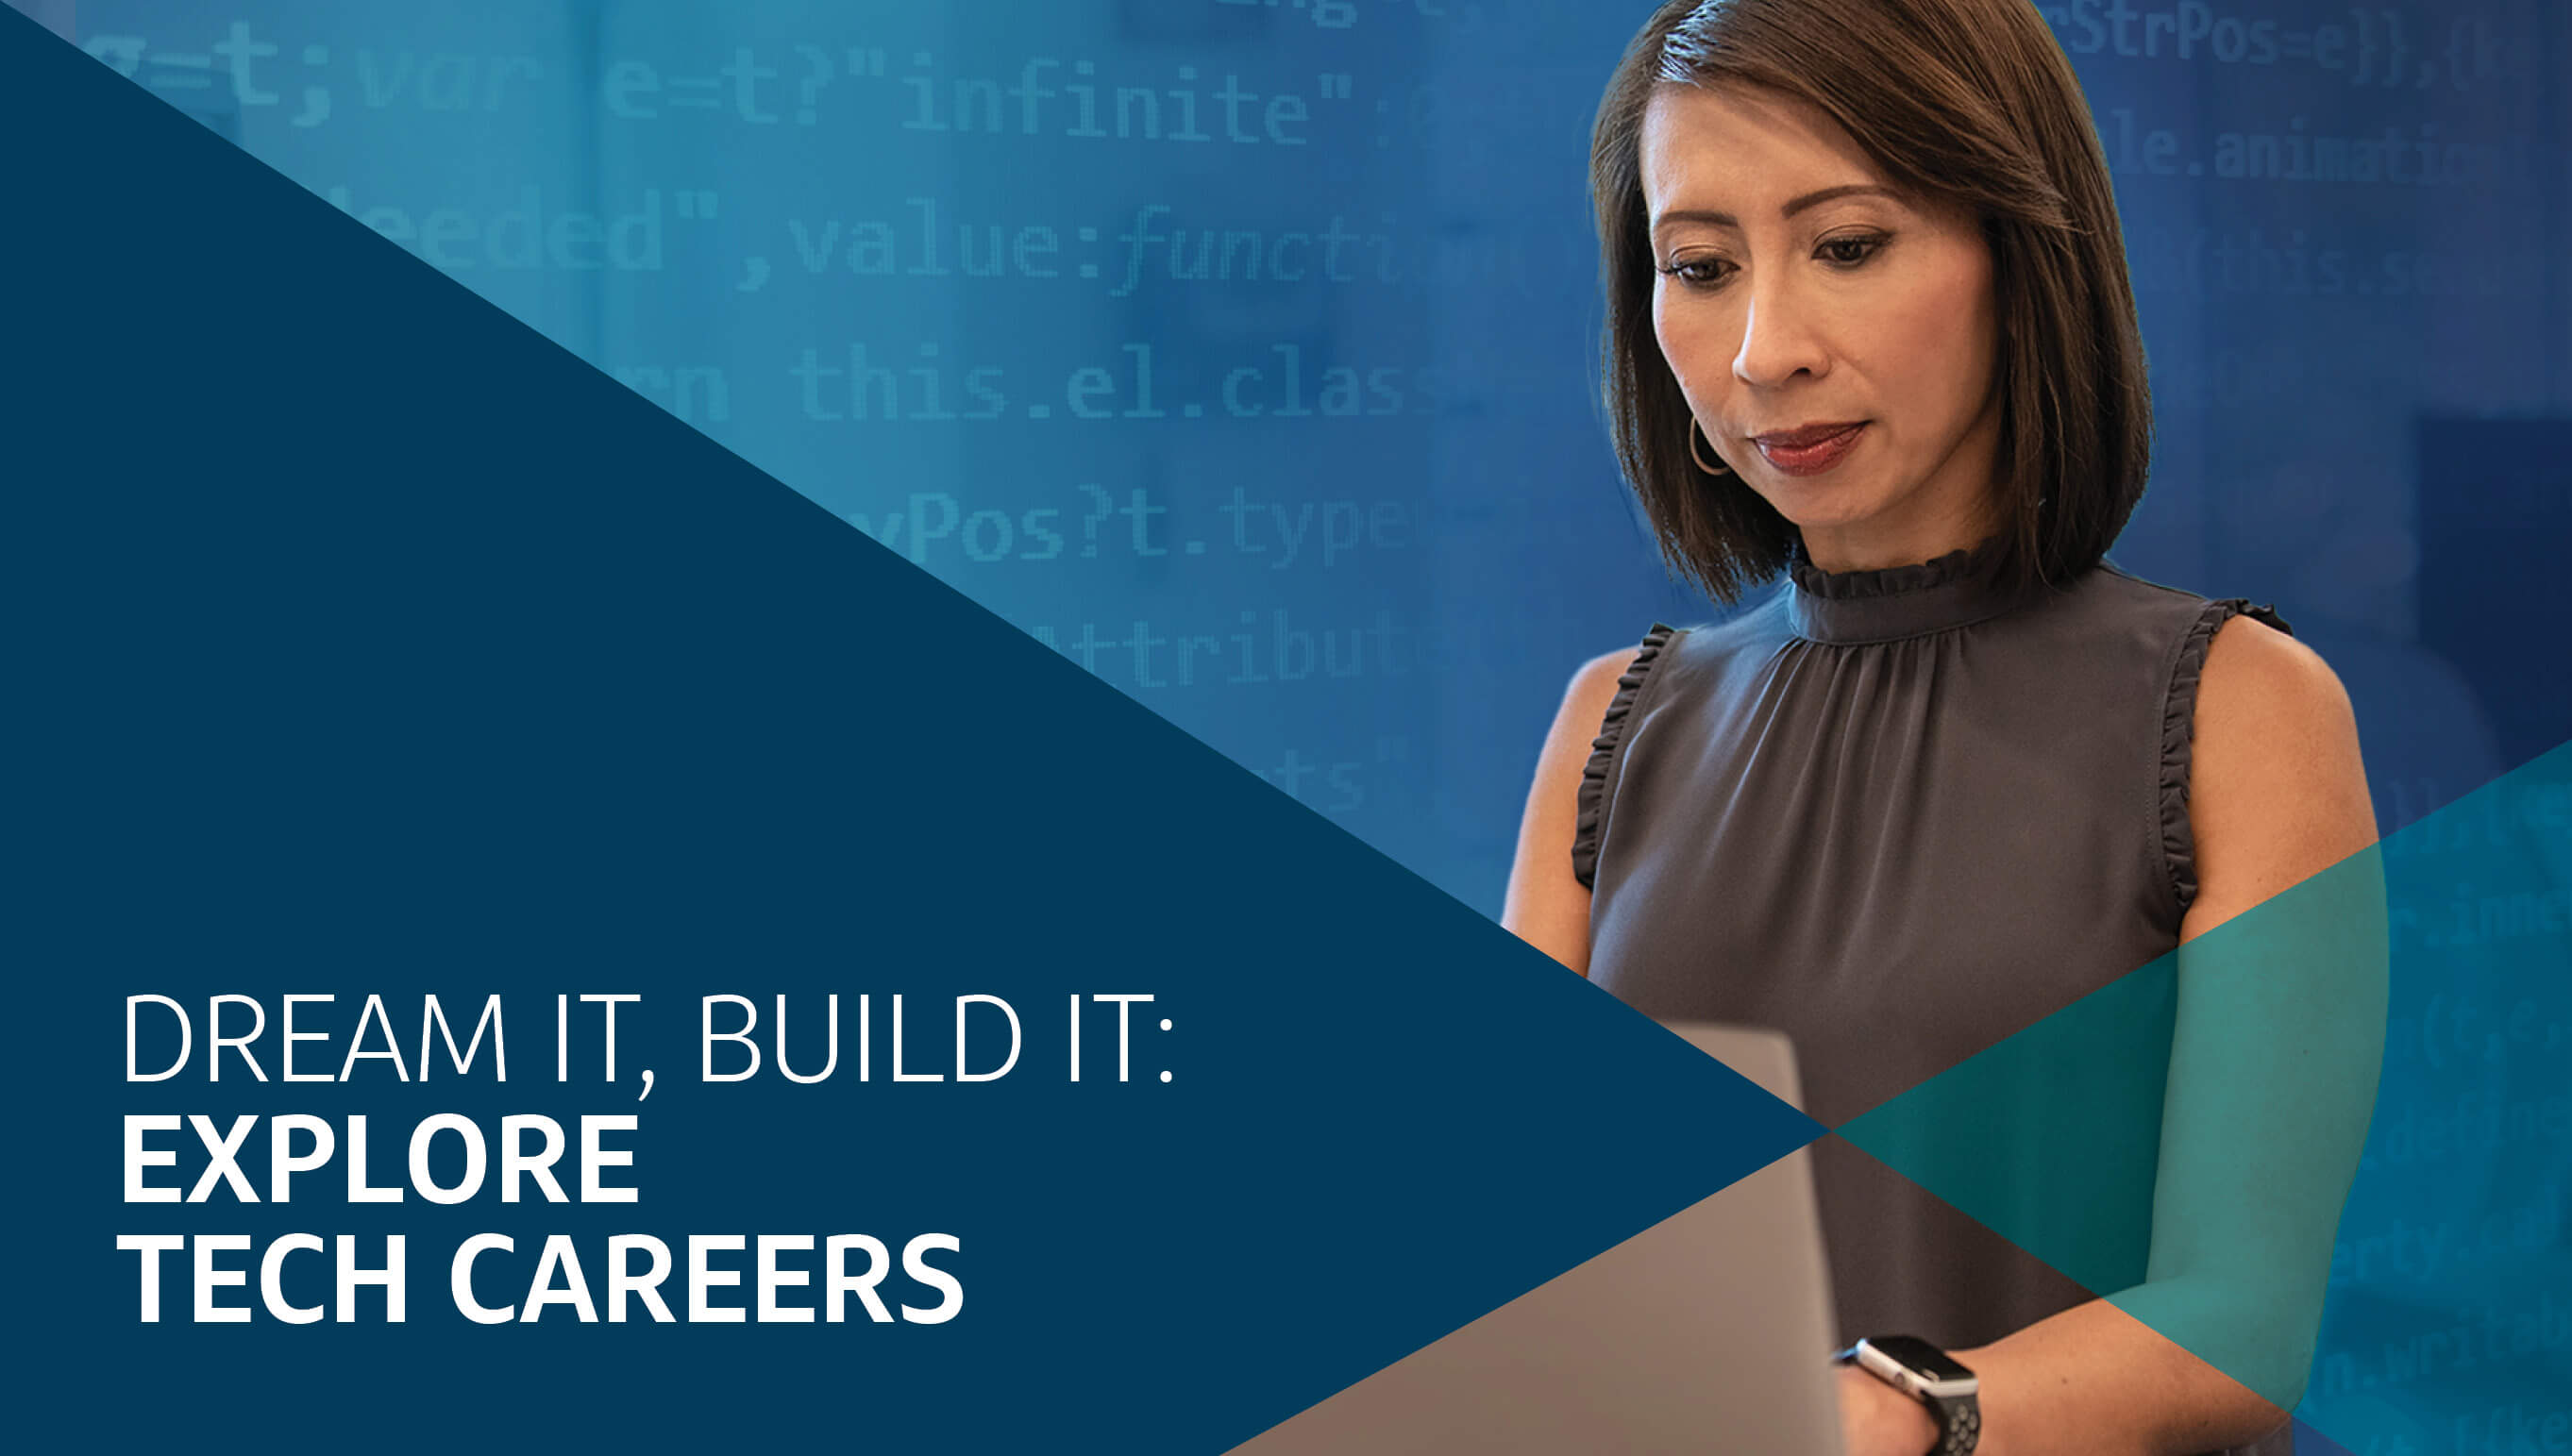 Dream it, Build it: Explore tech careers